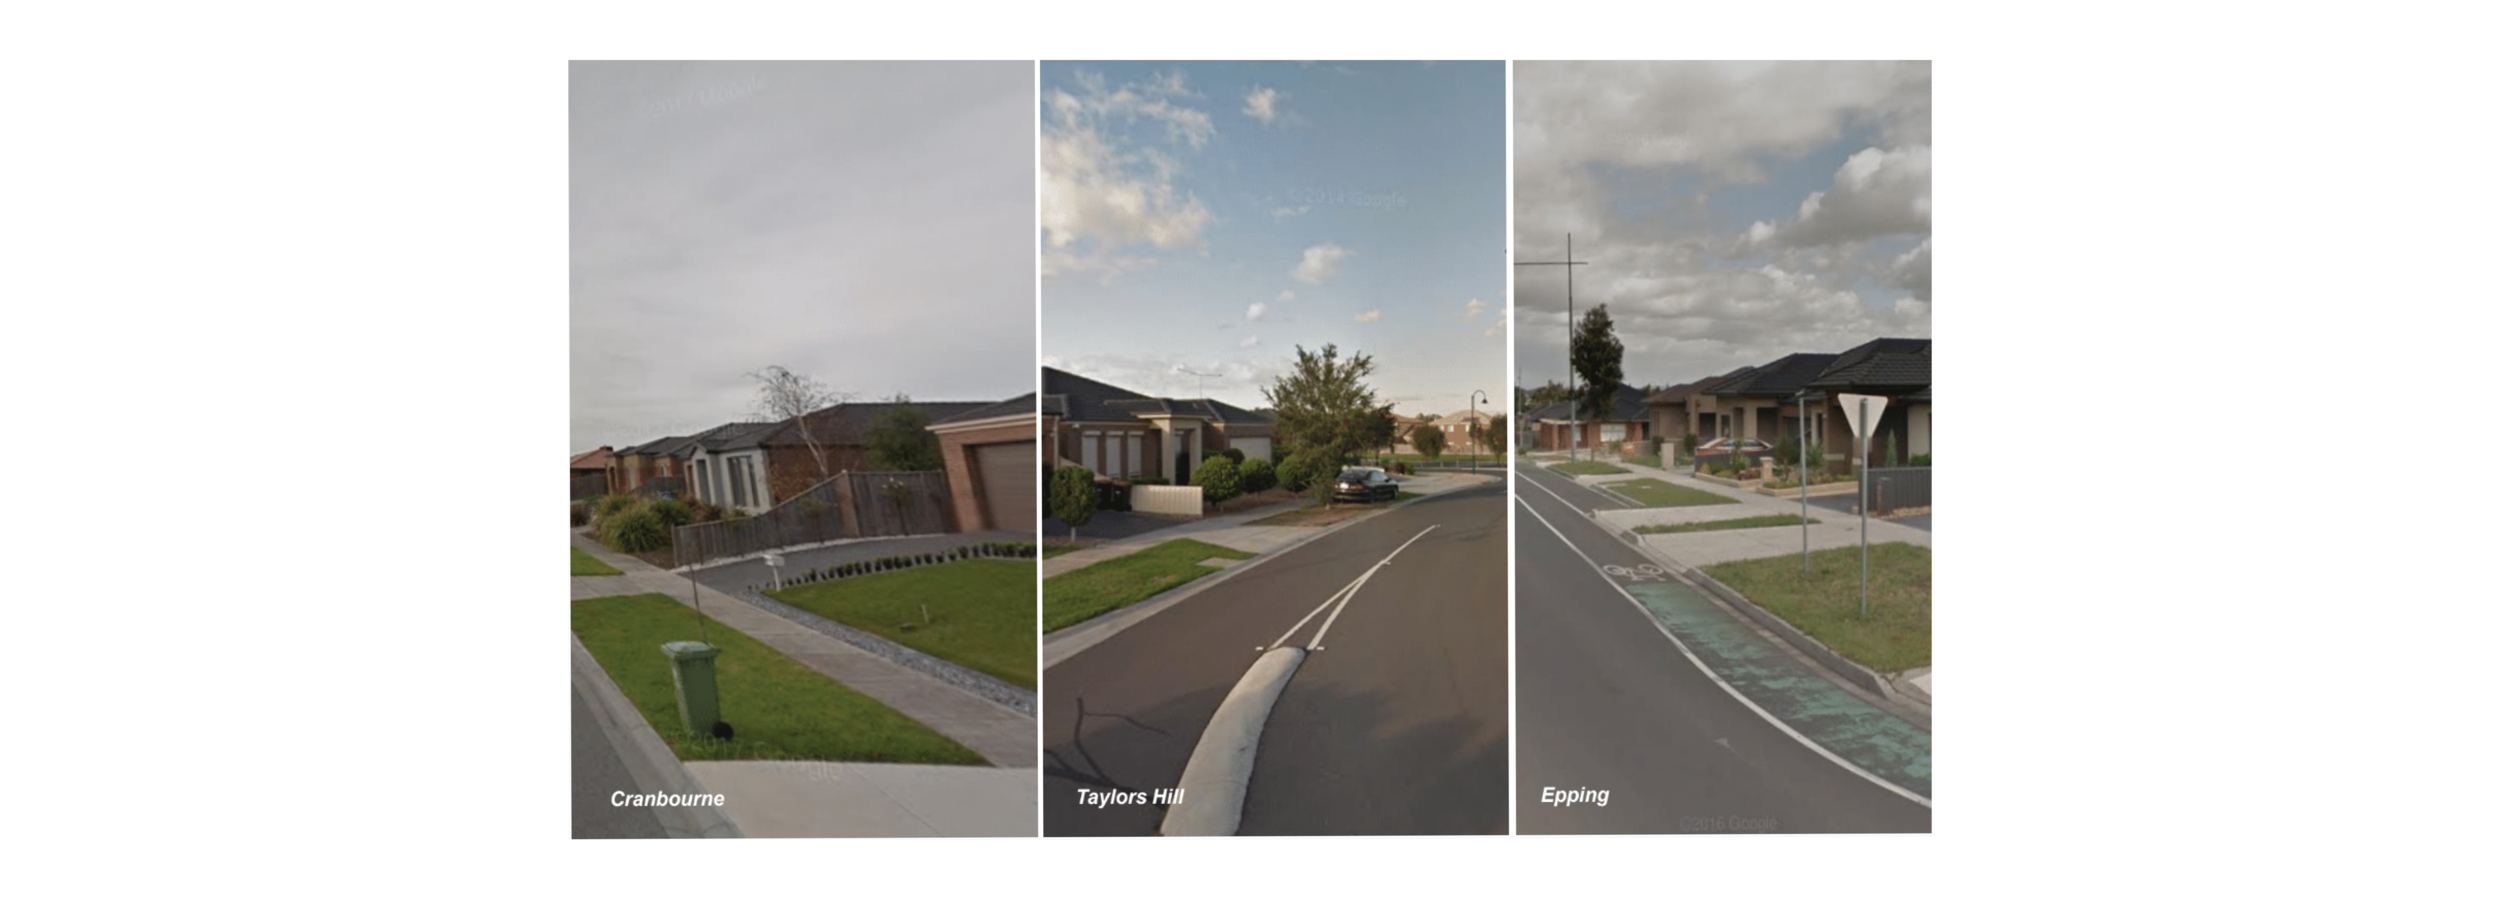 On the surface: Cranbourne, Taylors Hill, and Epping.